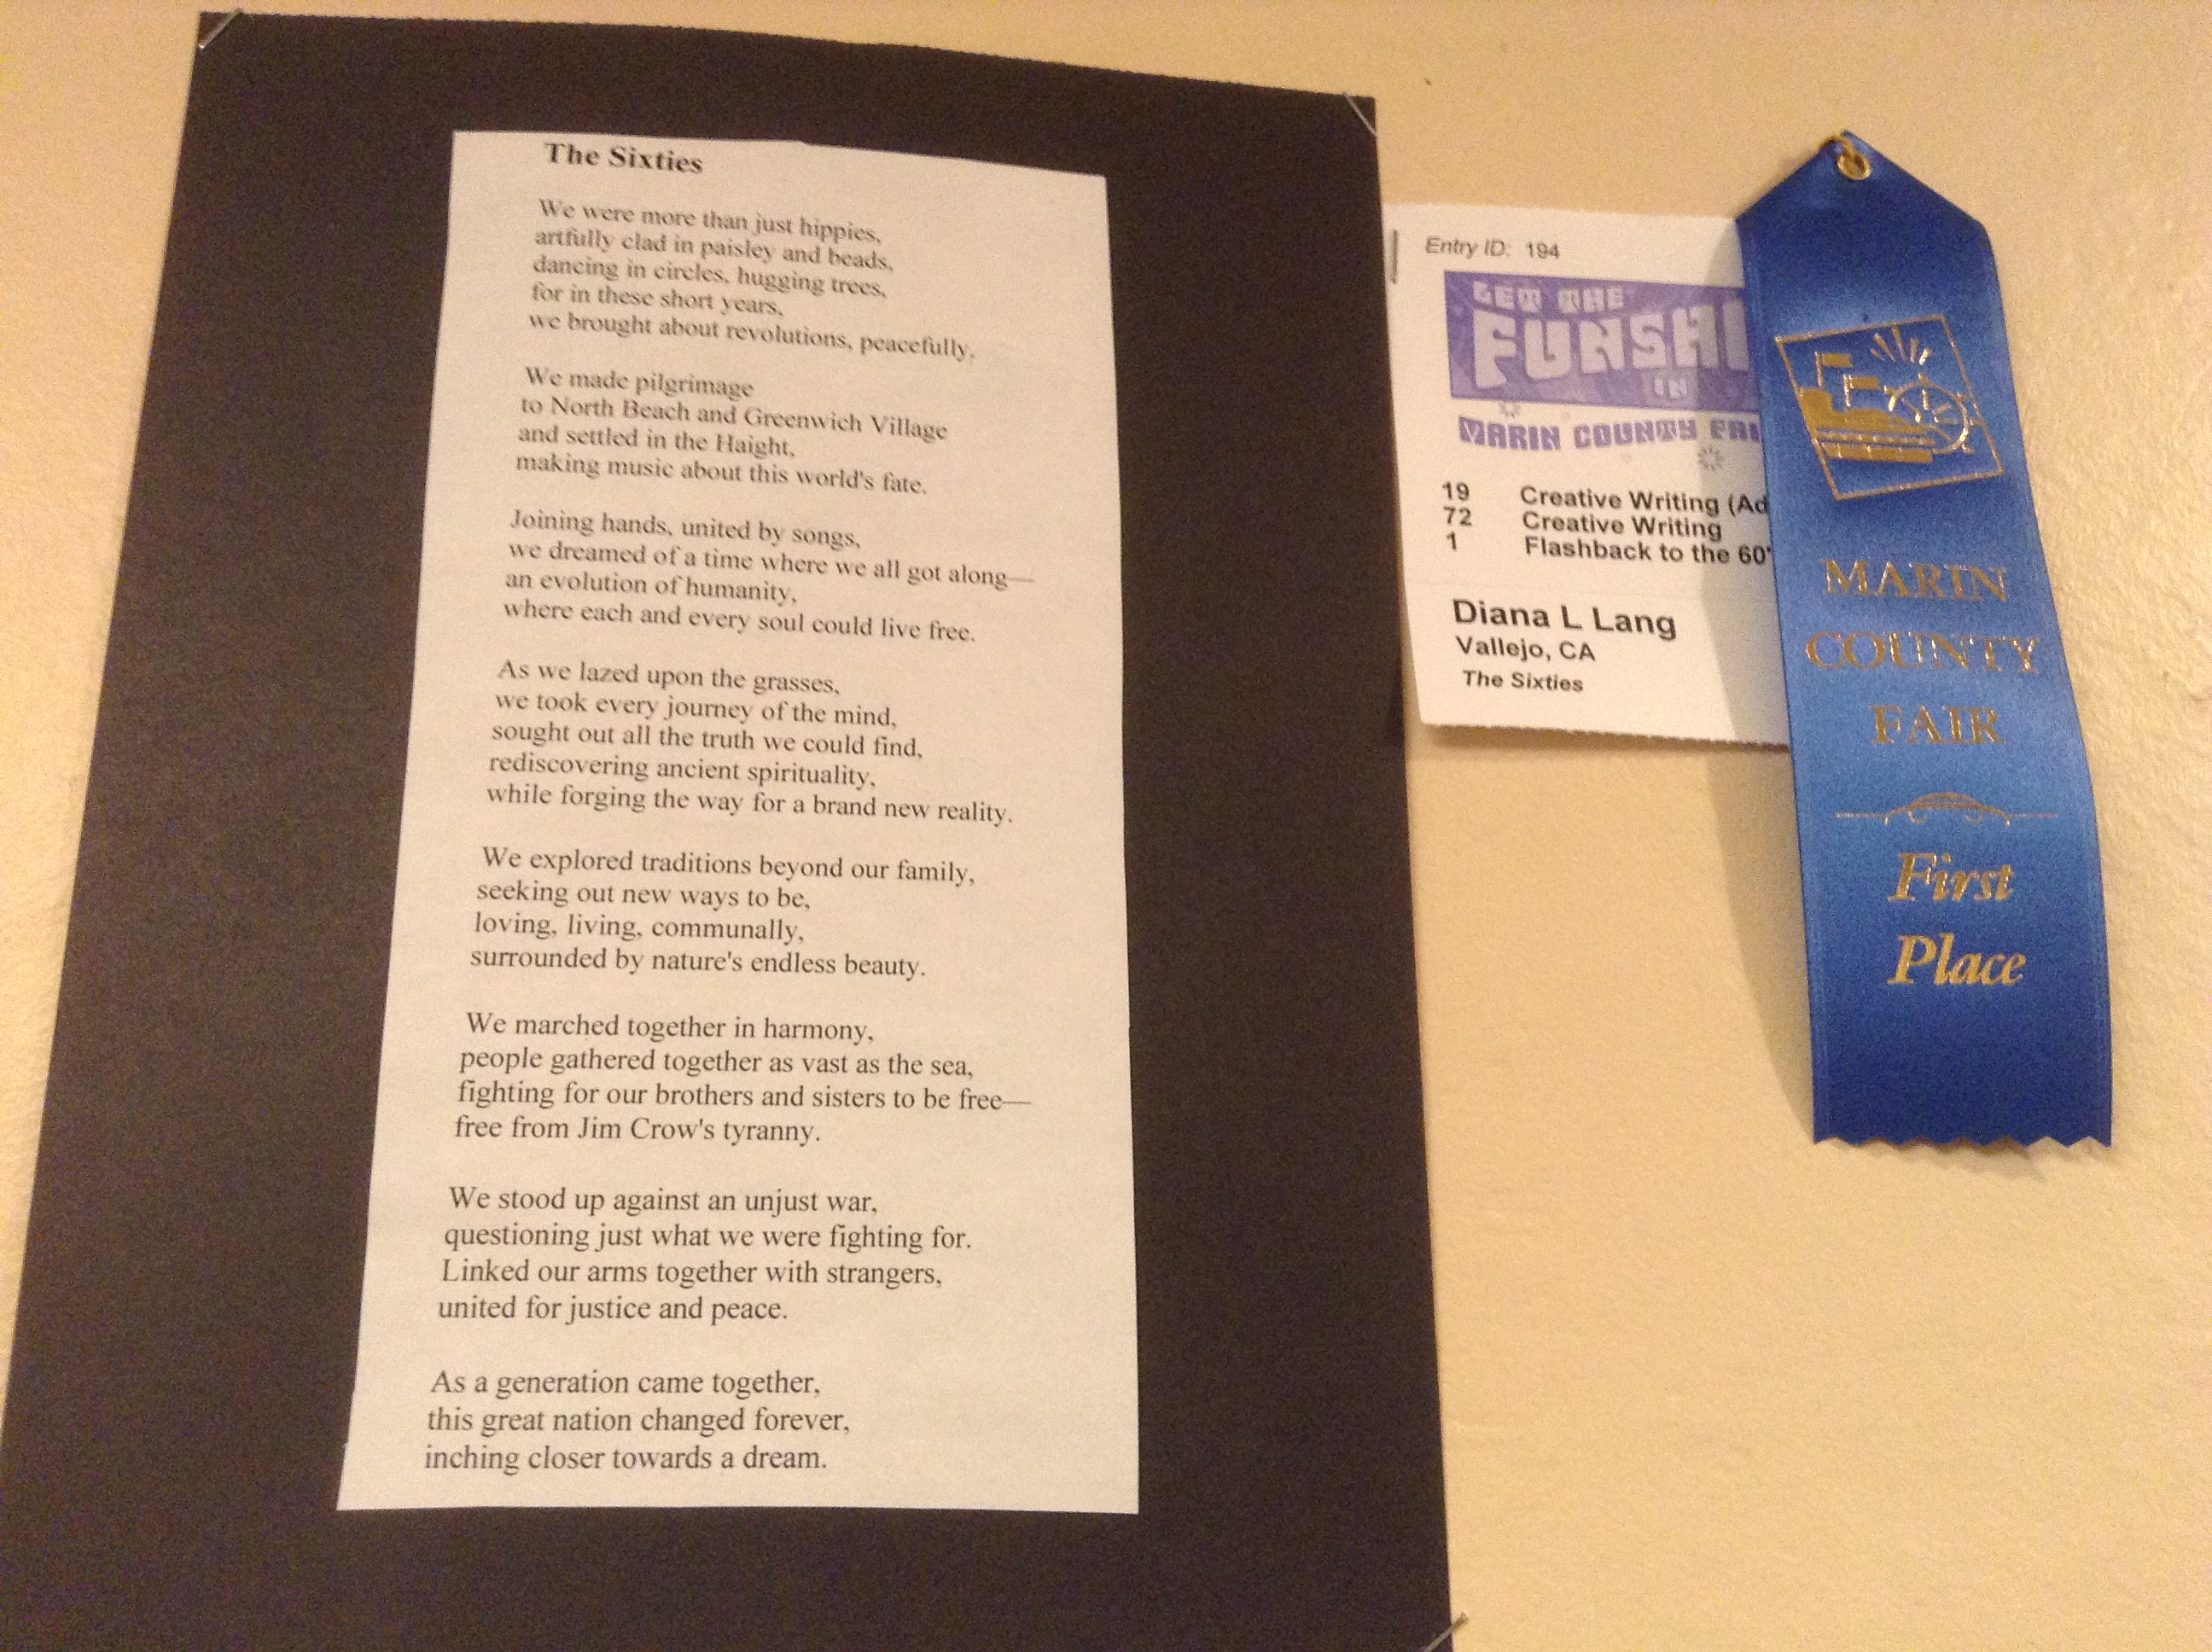 The Sixties D.L. Lang Marin County Fair Blue Ribbon